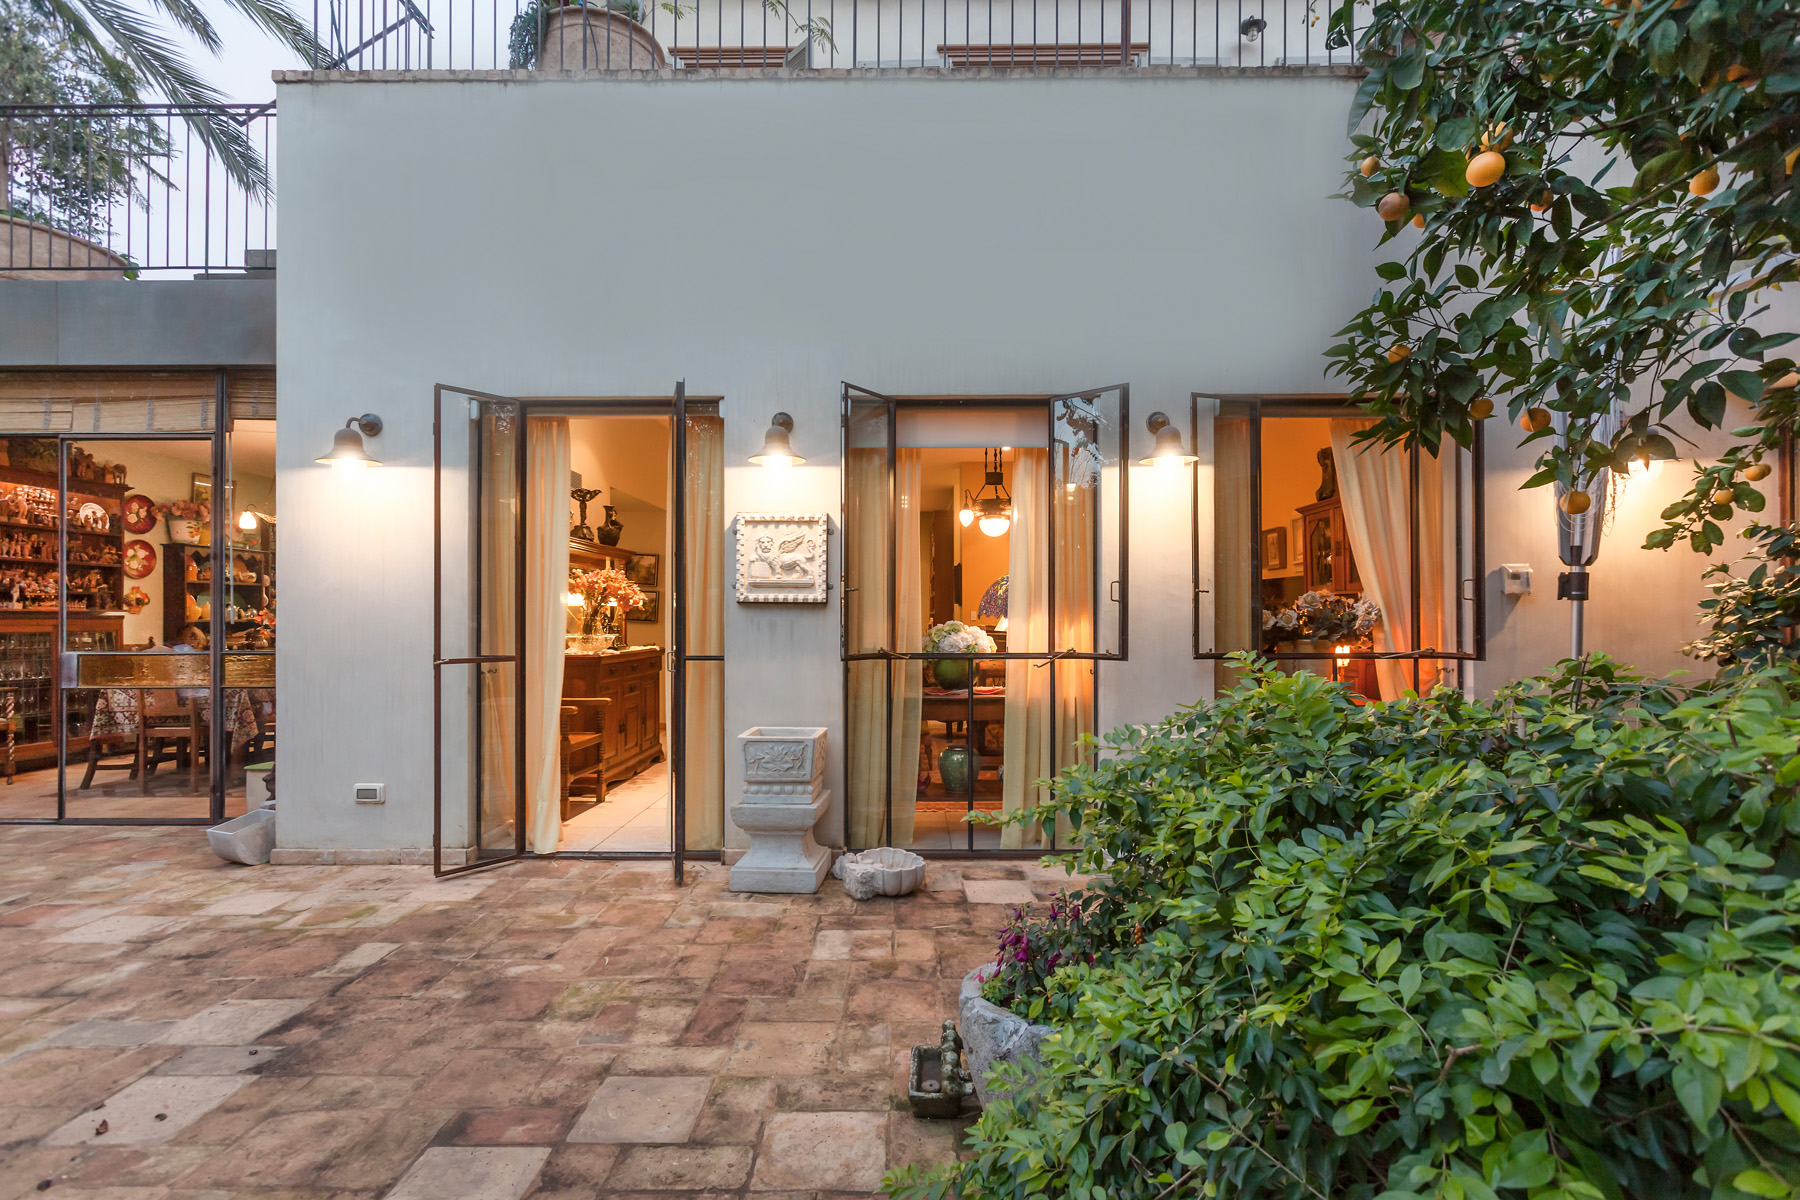 Additional photo for property listing at An Eclectic Antique Style Home Tel Aviv, Israel Israel